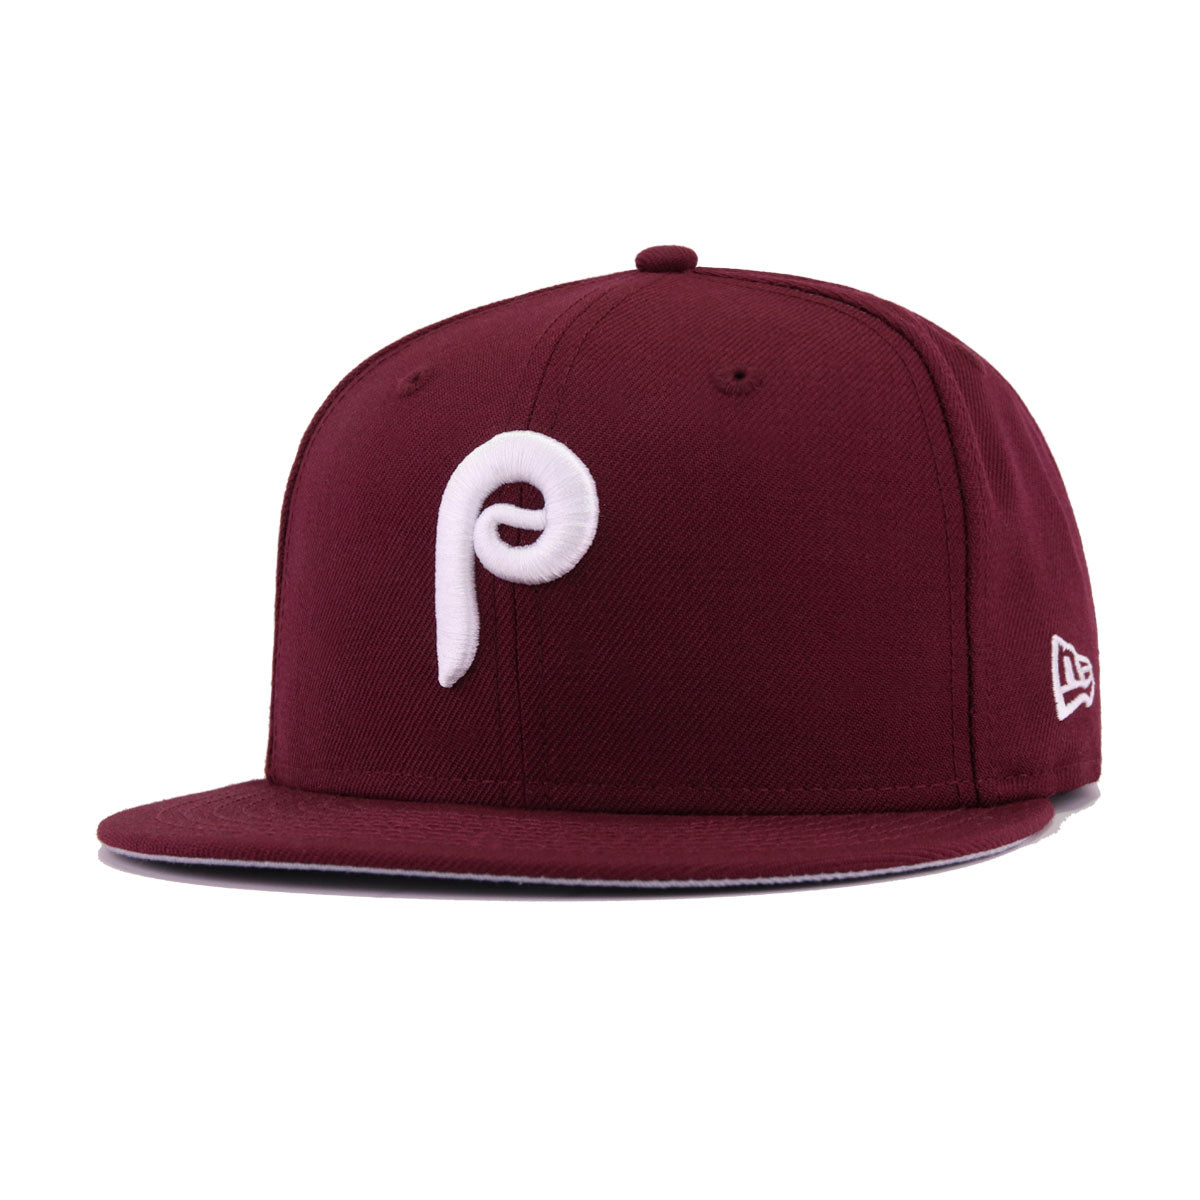 Philadelphia Phillies Maroon 1980 World Series New Era 9Fifty Snapback fda1faef54e